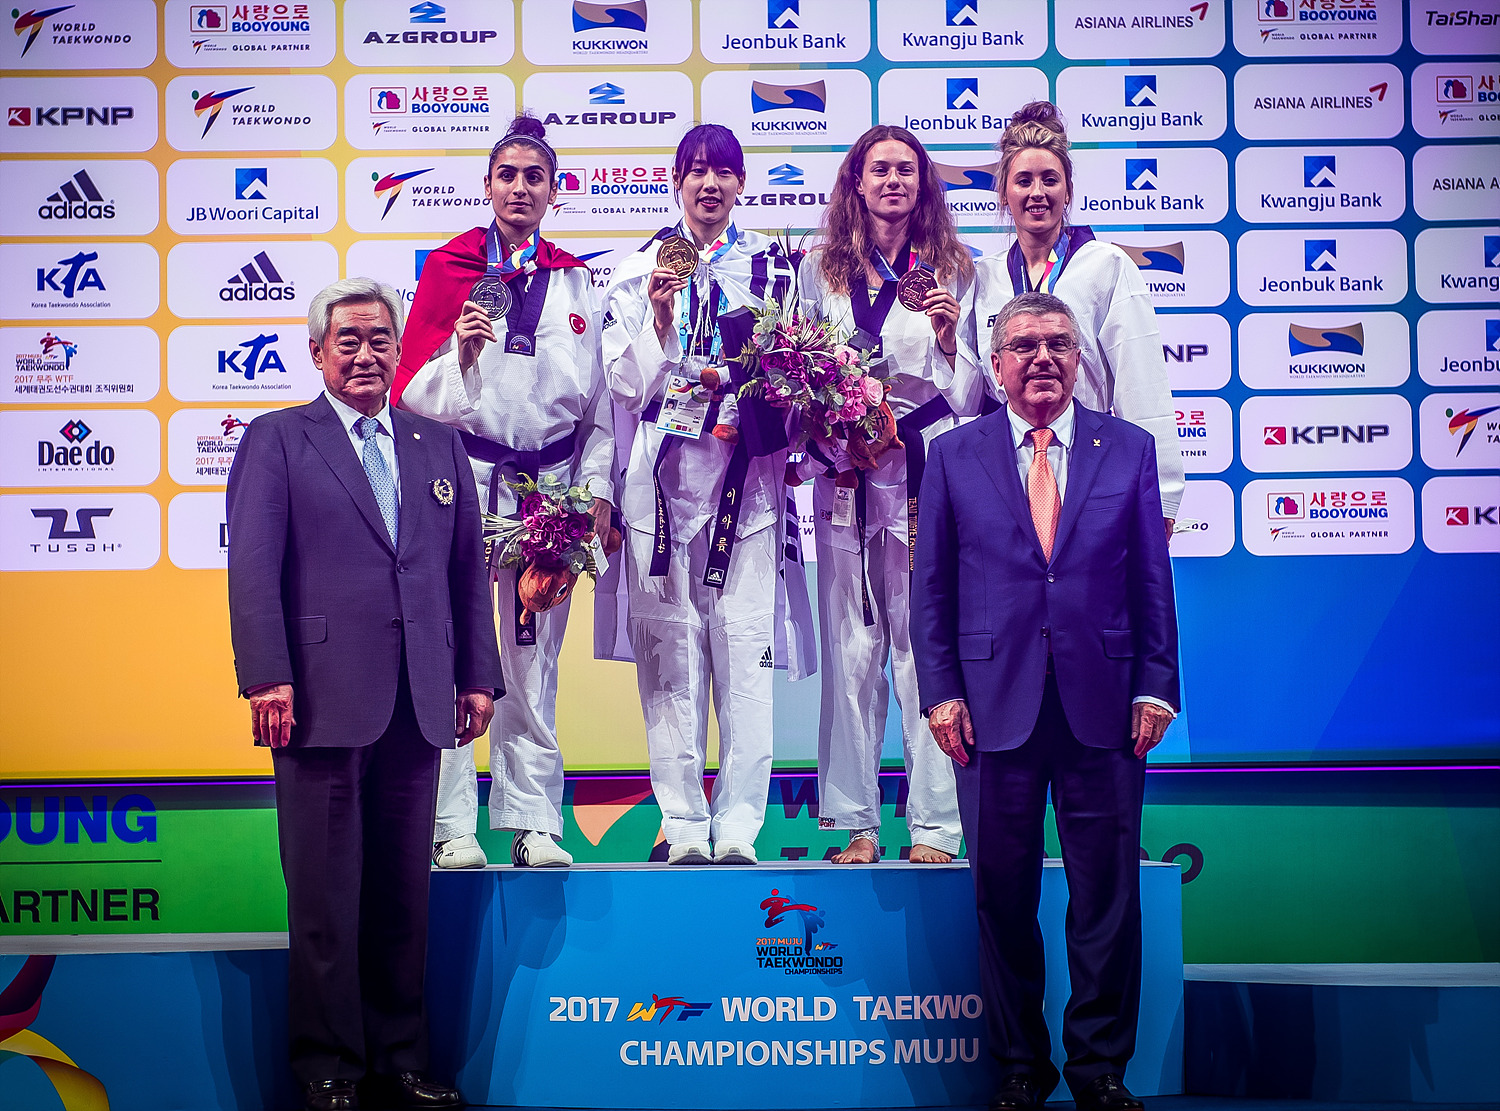 Awarding Ceremony of Muju 2017 WT Championships_F-57kg